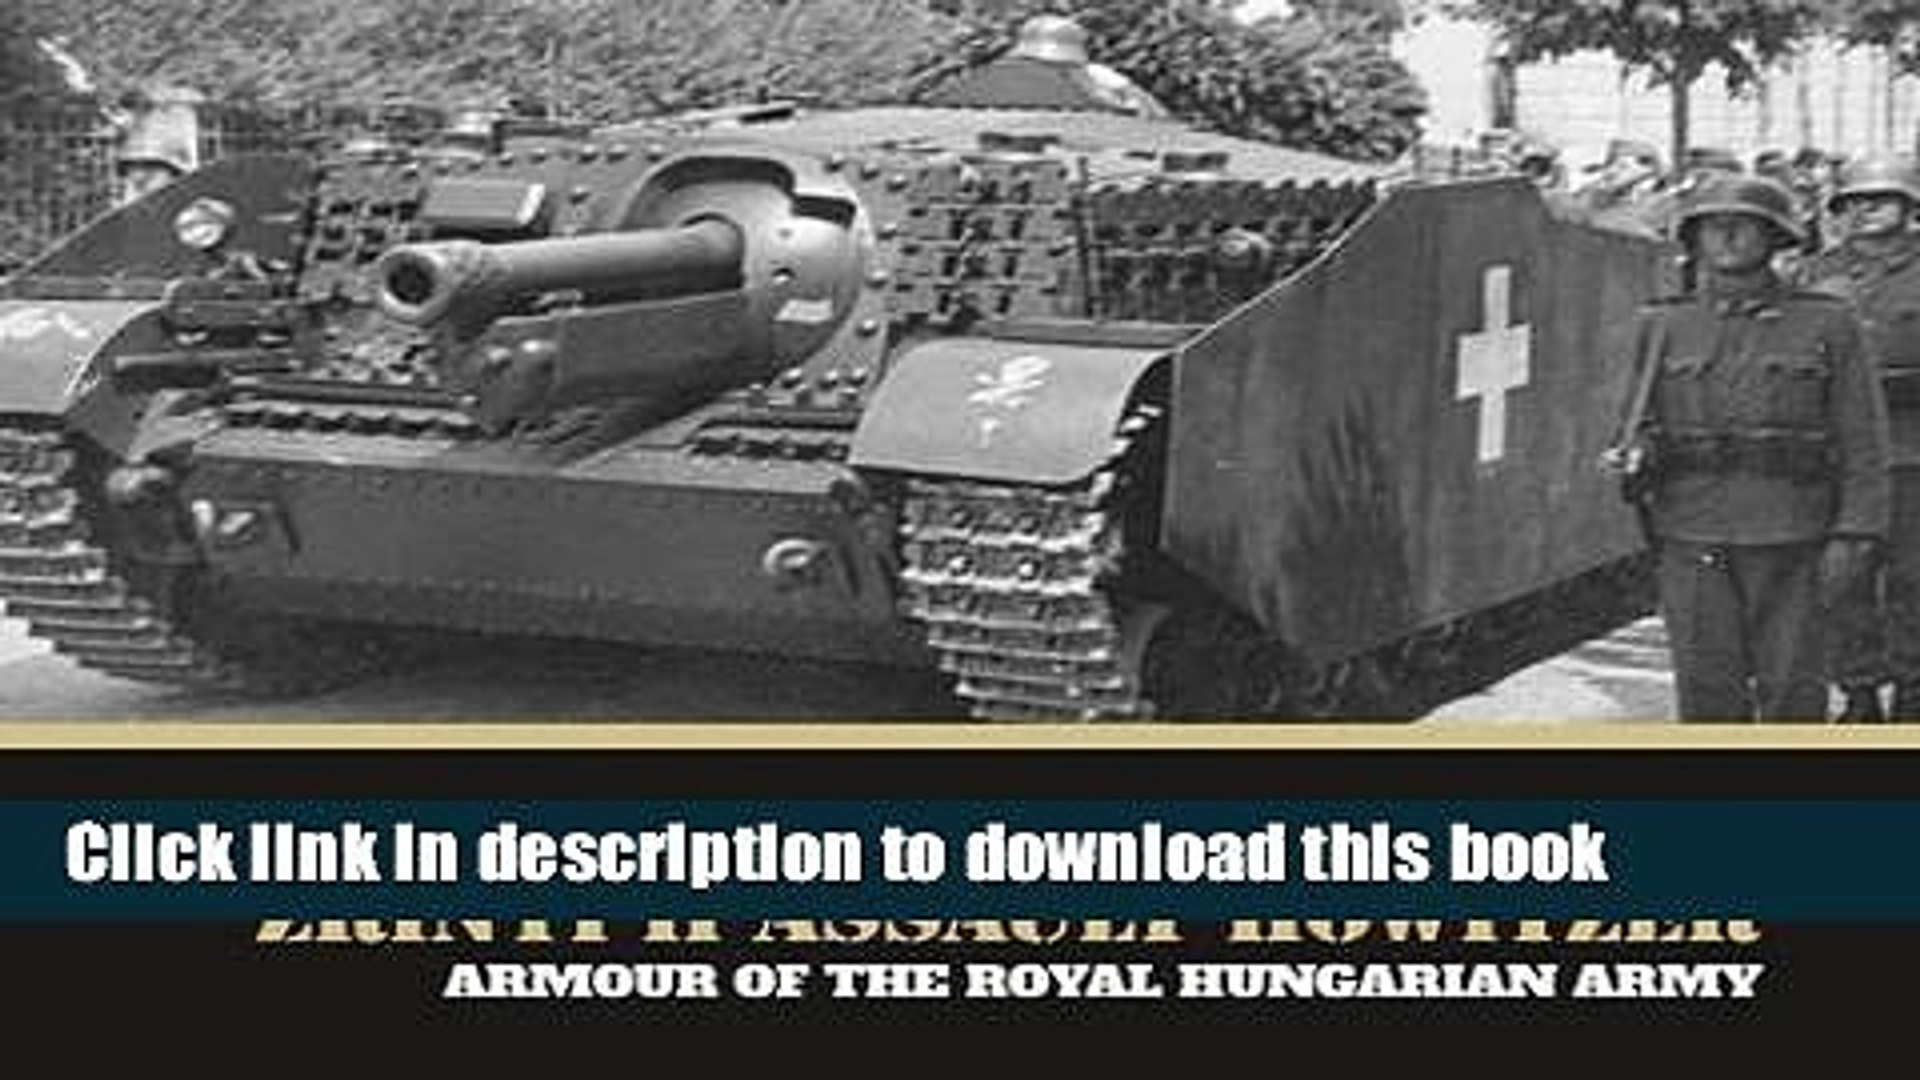 Download Zrinyi II assault howitzer: Armour of the Royal Hungarian Army Book Online